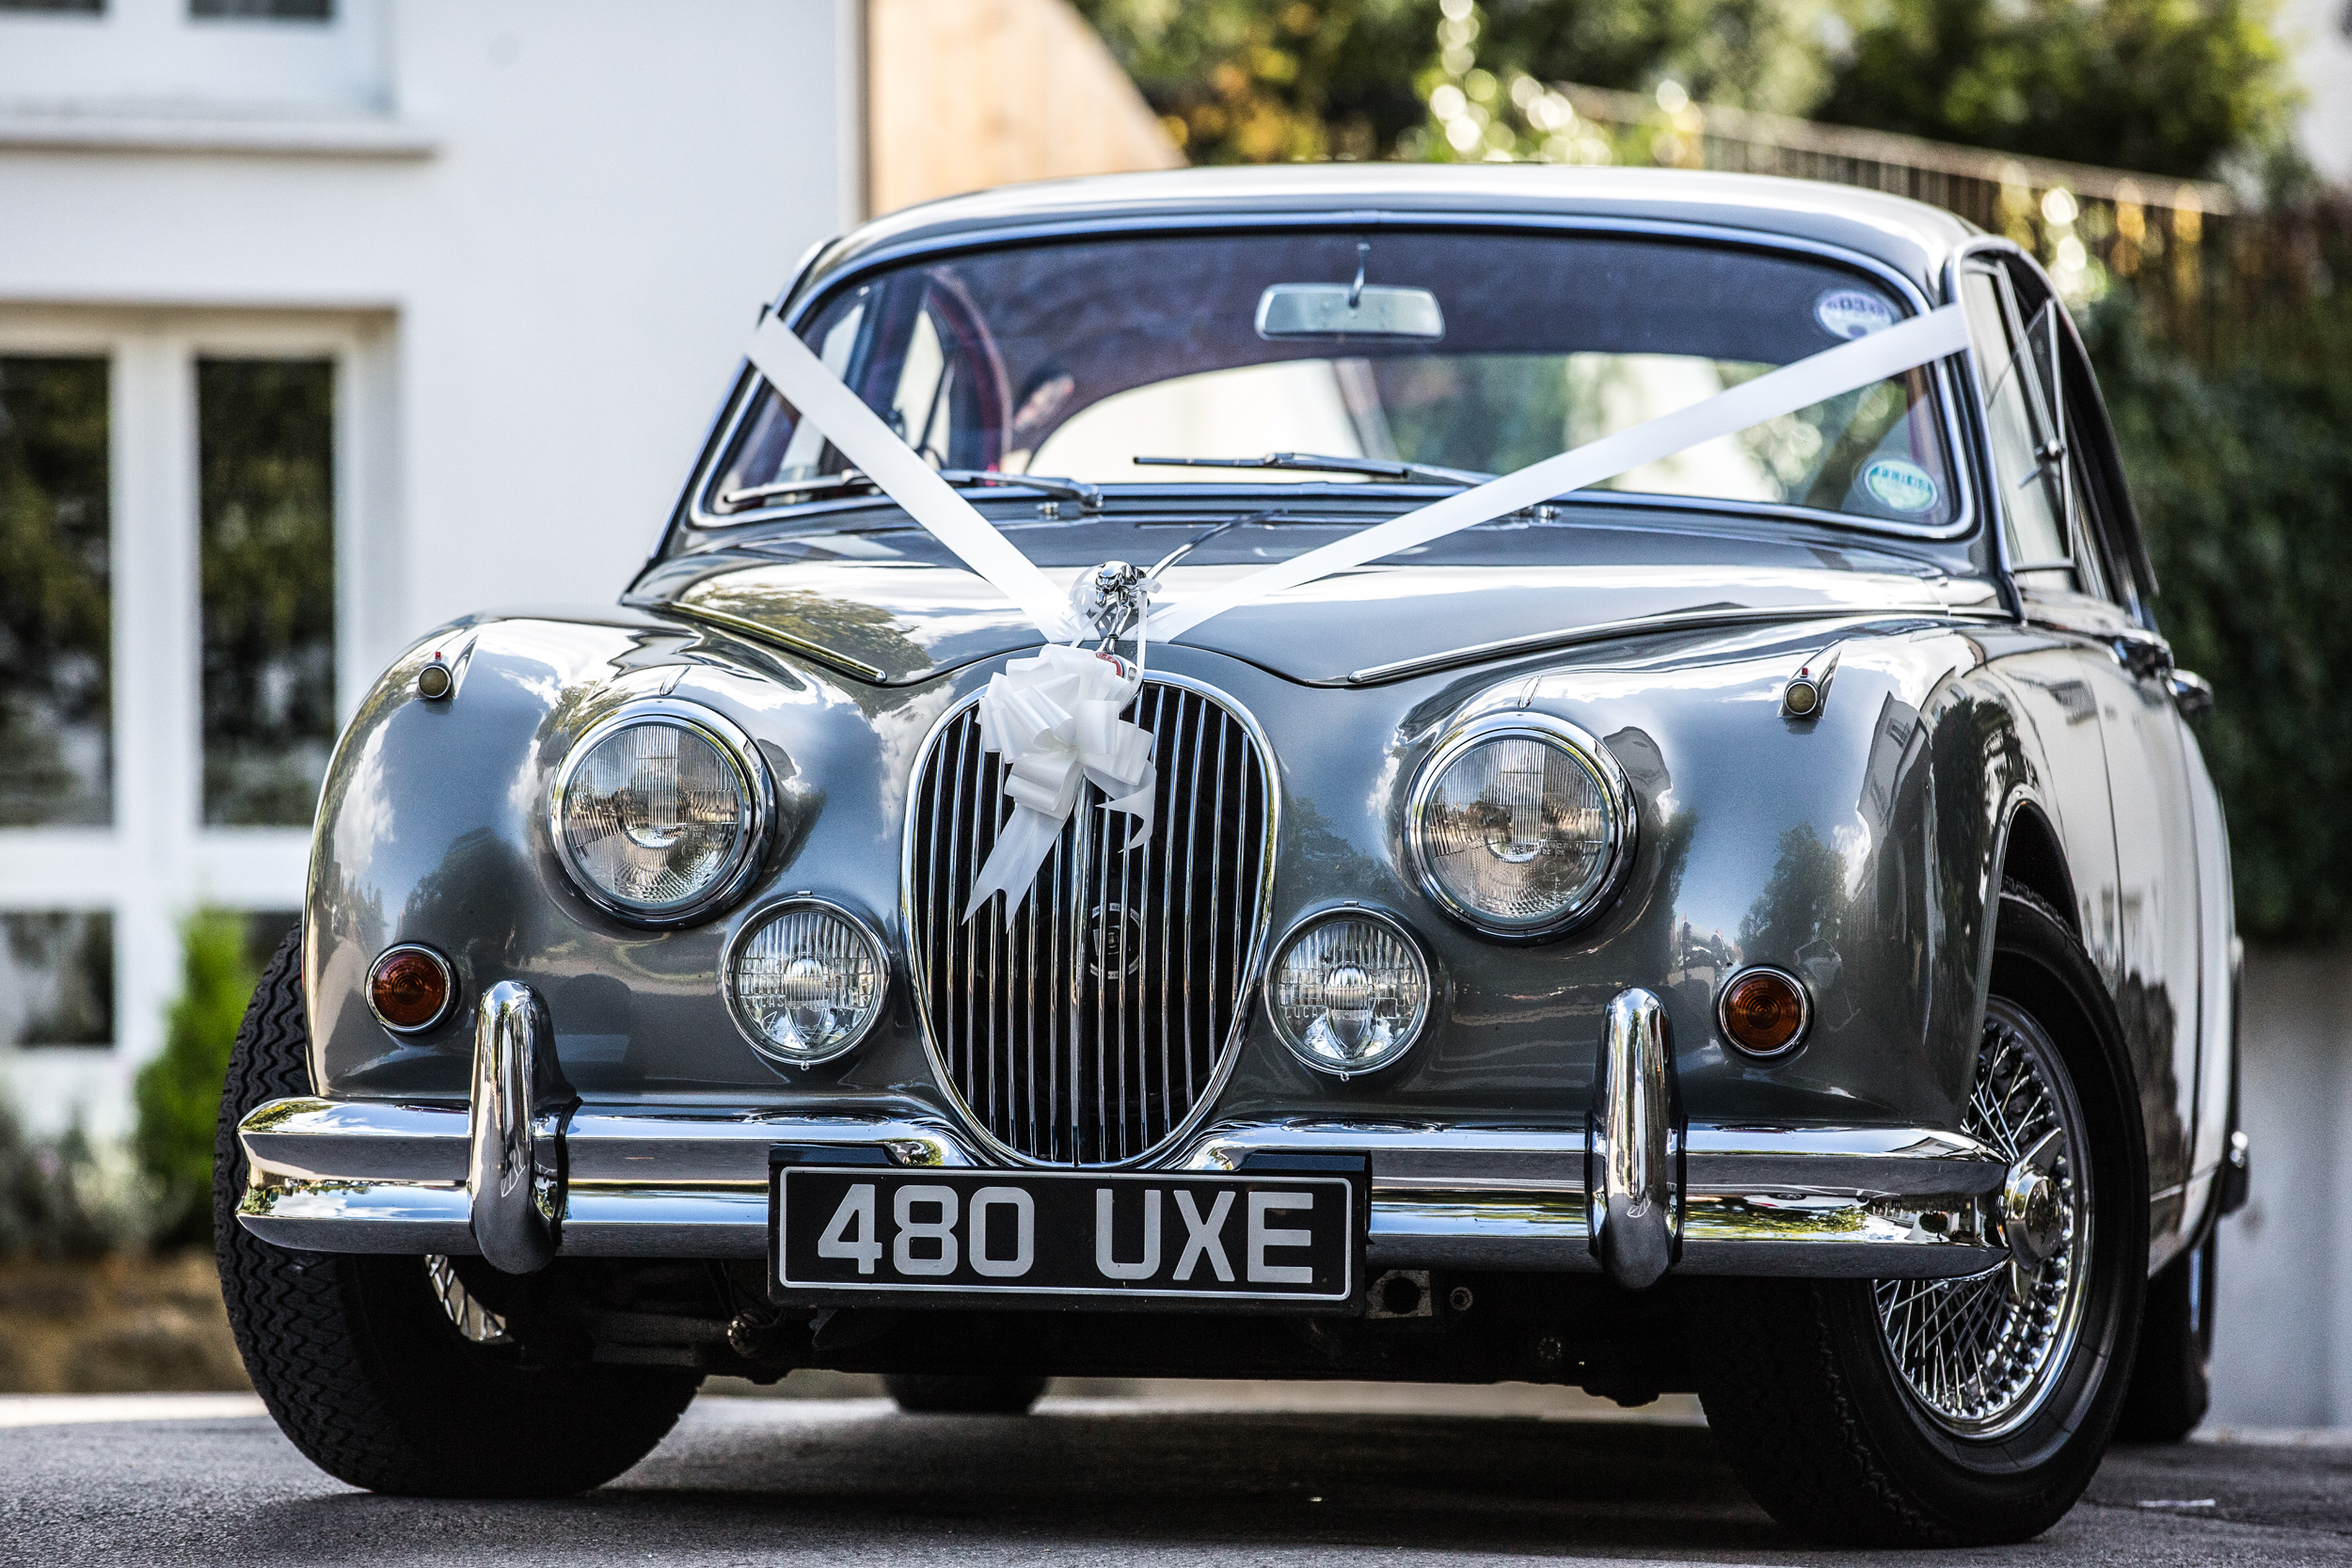 Henley Wedding Cars Classic Jaguar Wedding Cars Oxford, Berks & Bucks